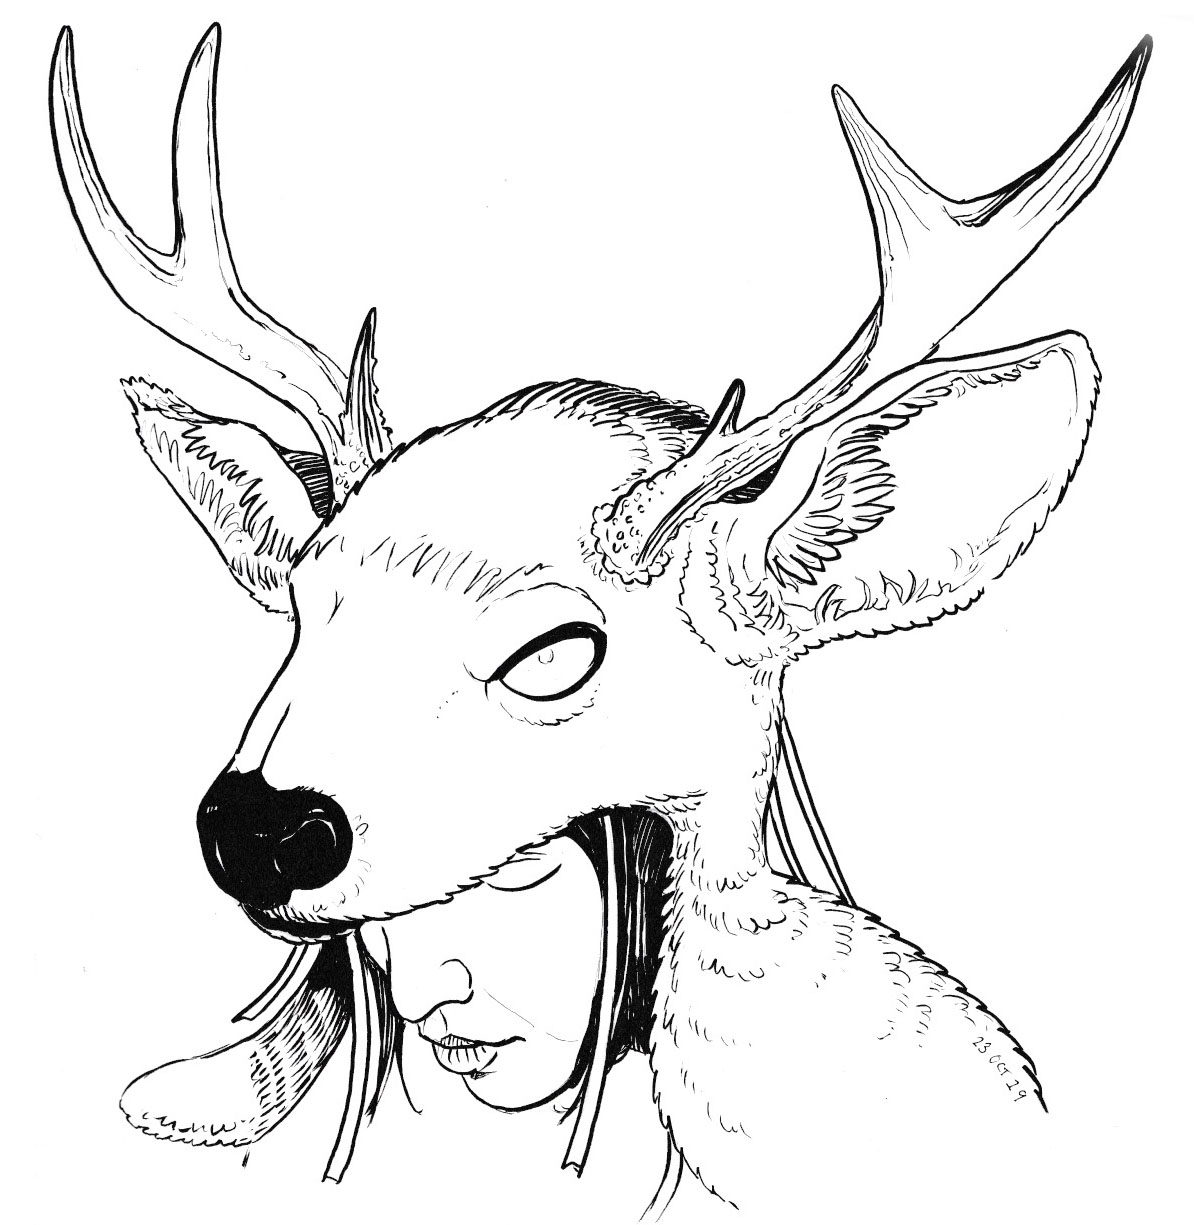 Inktober 2019 - Day 22, Deer Woman